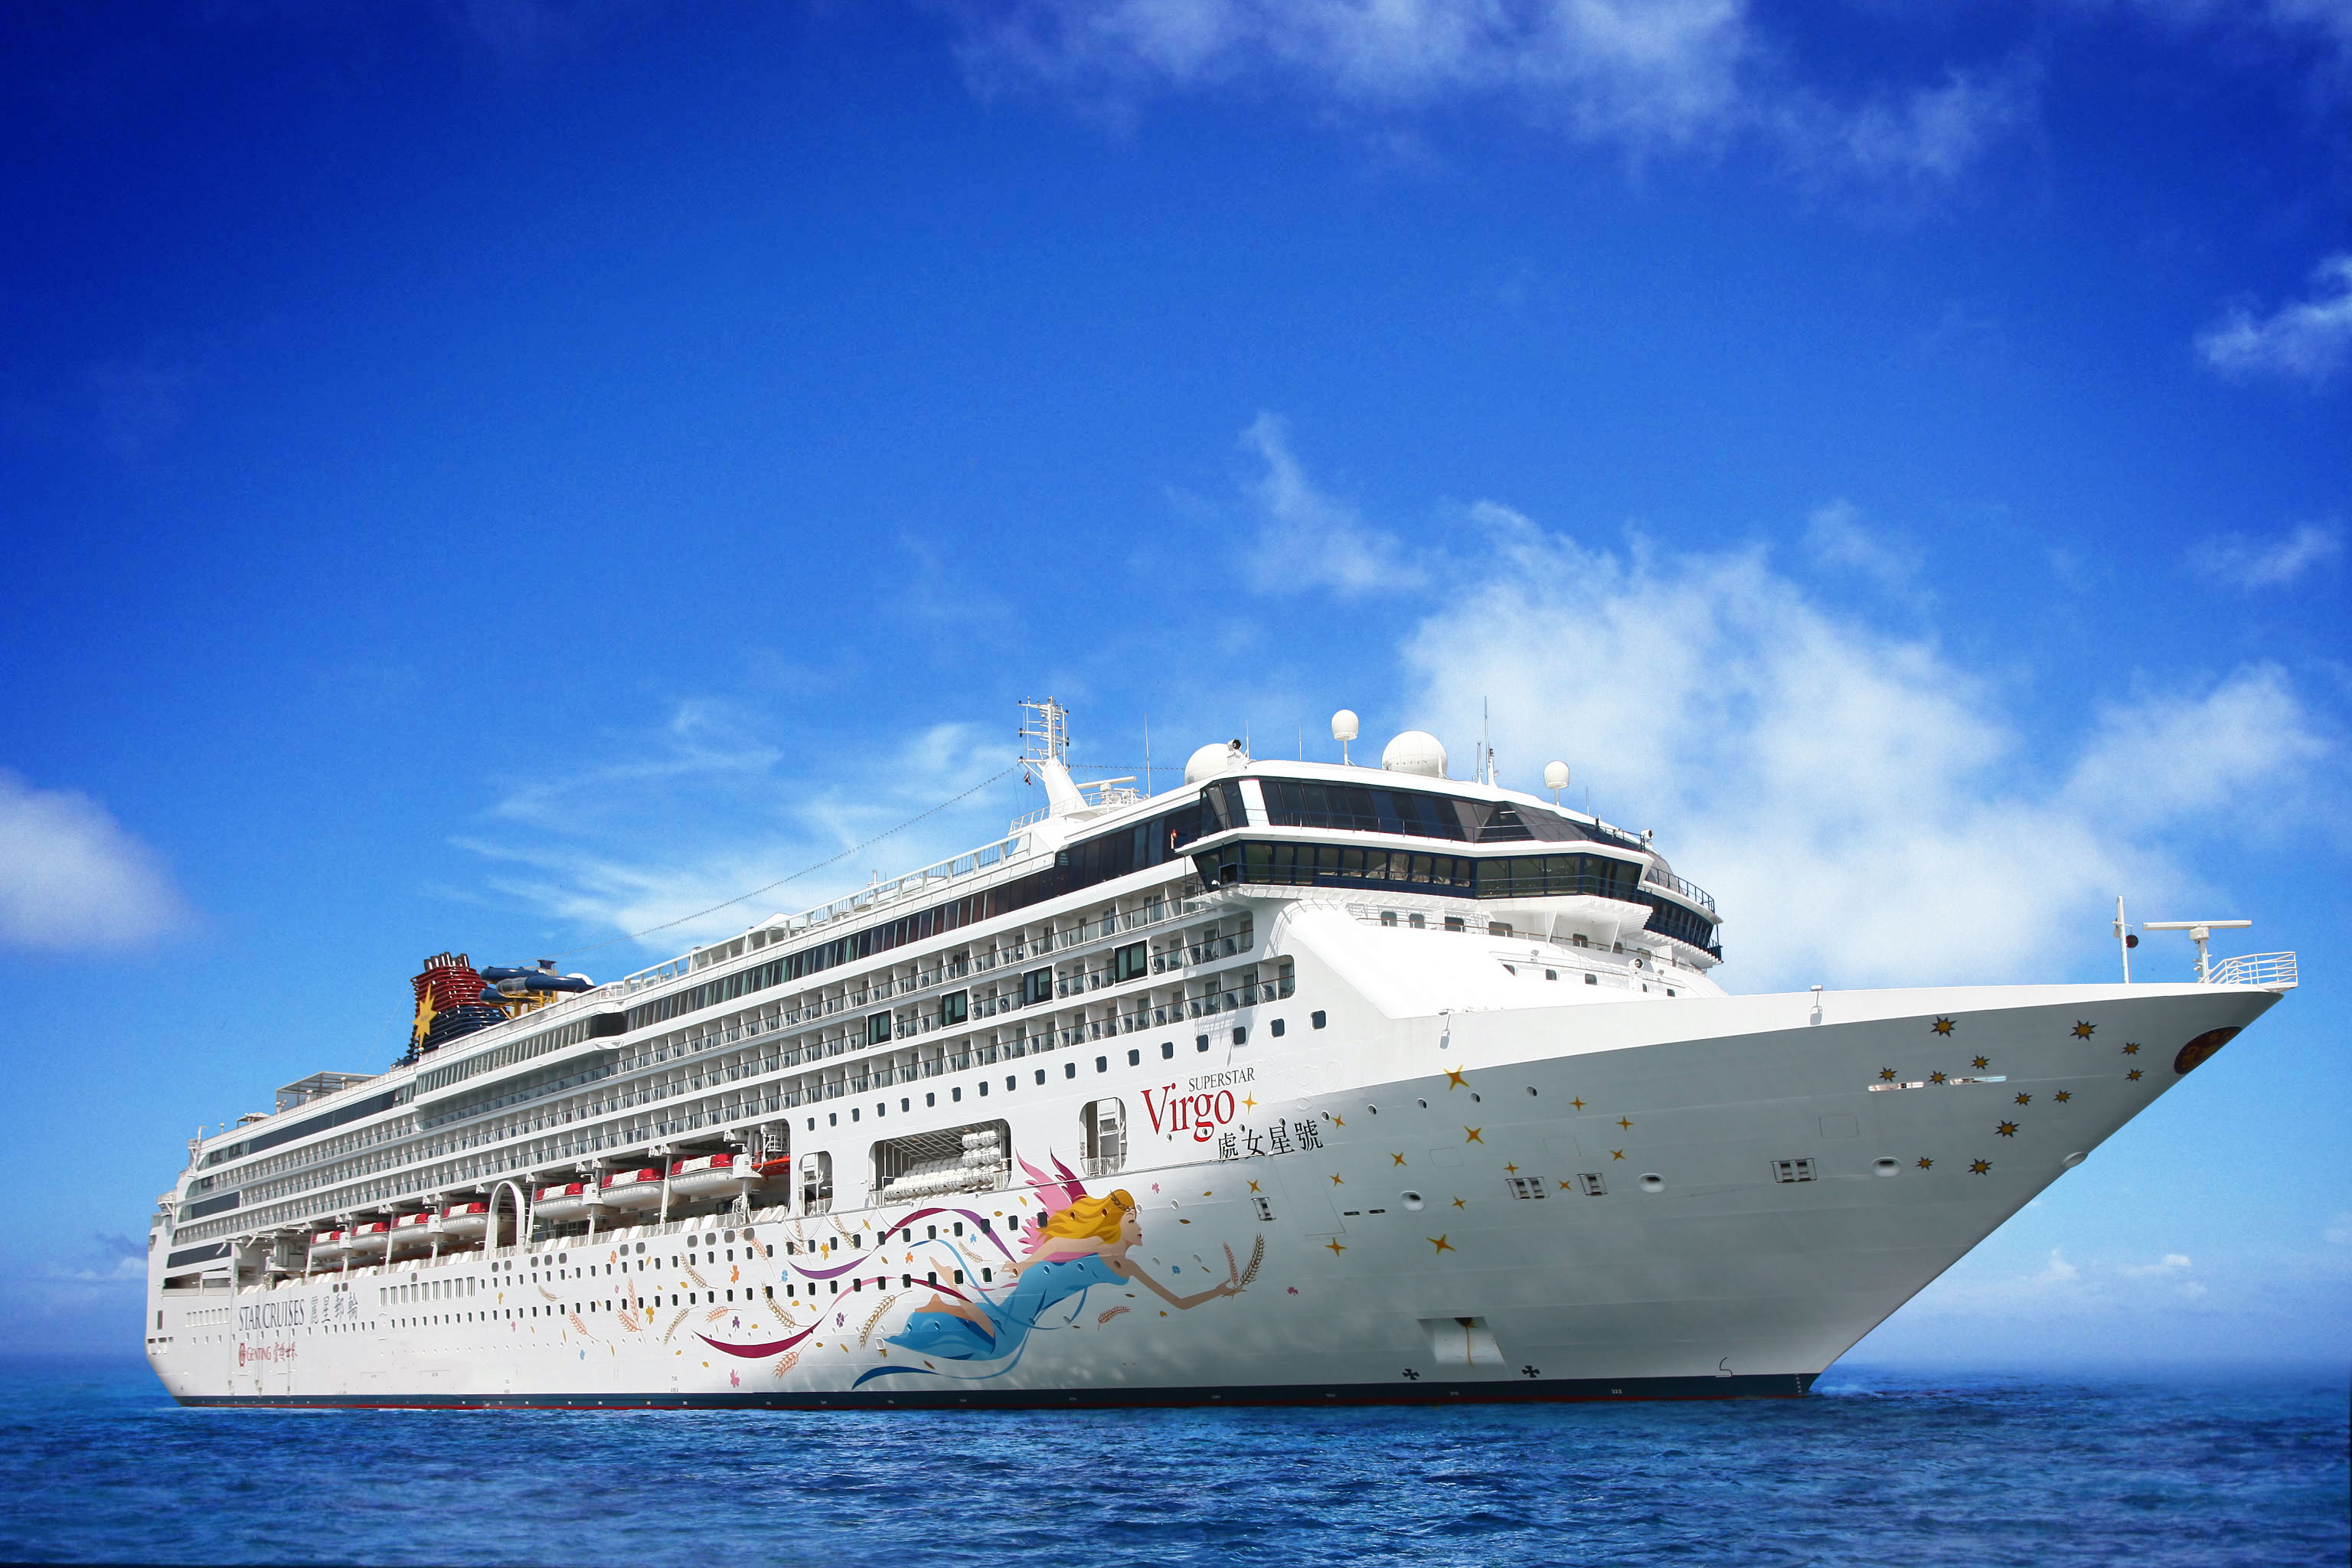 STAR CRUISES SUPERSTAR VIRGO IN MANILA